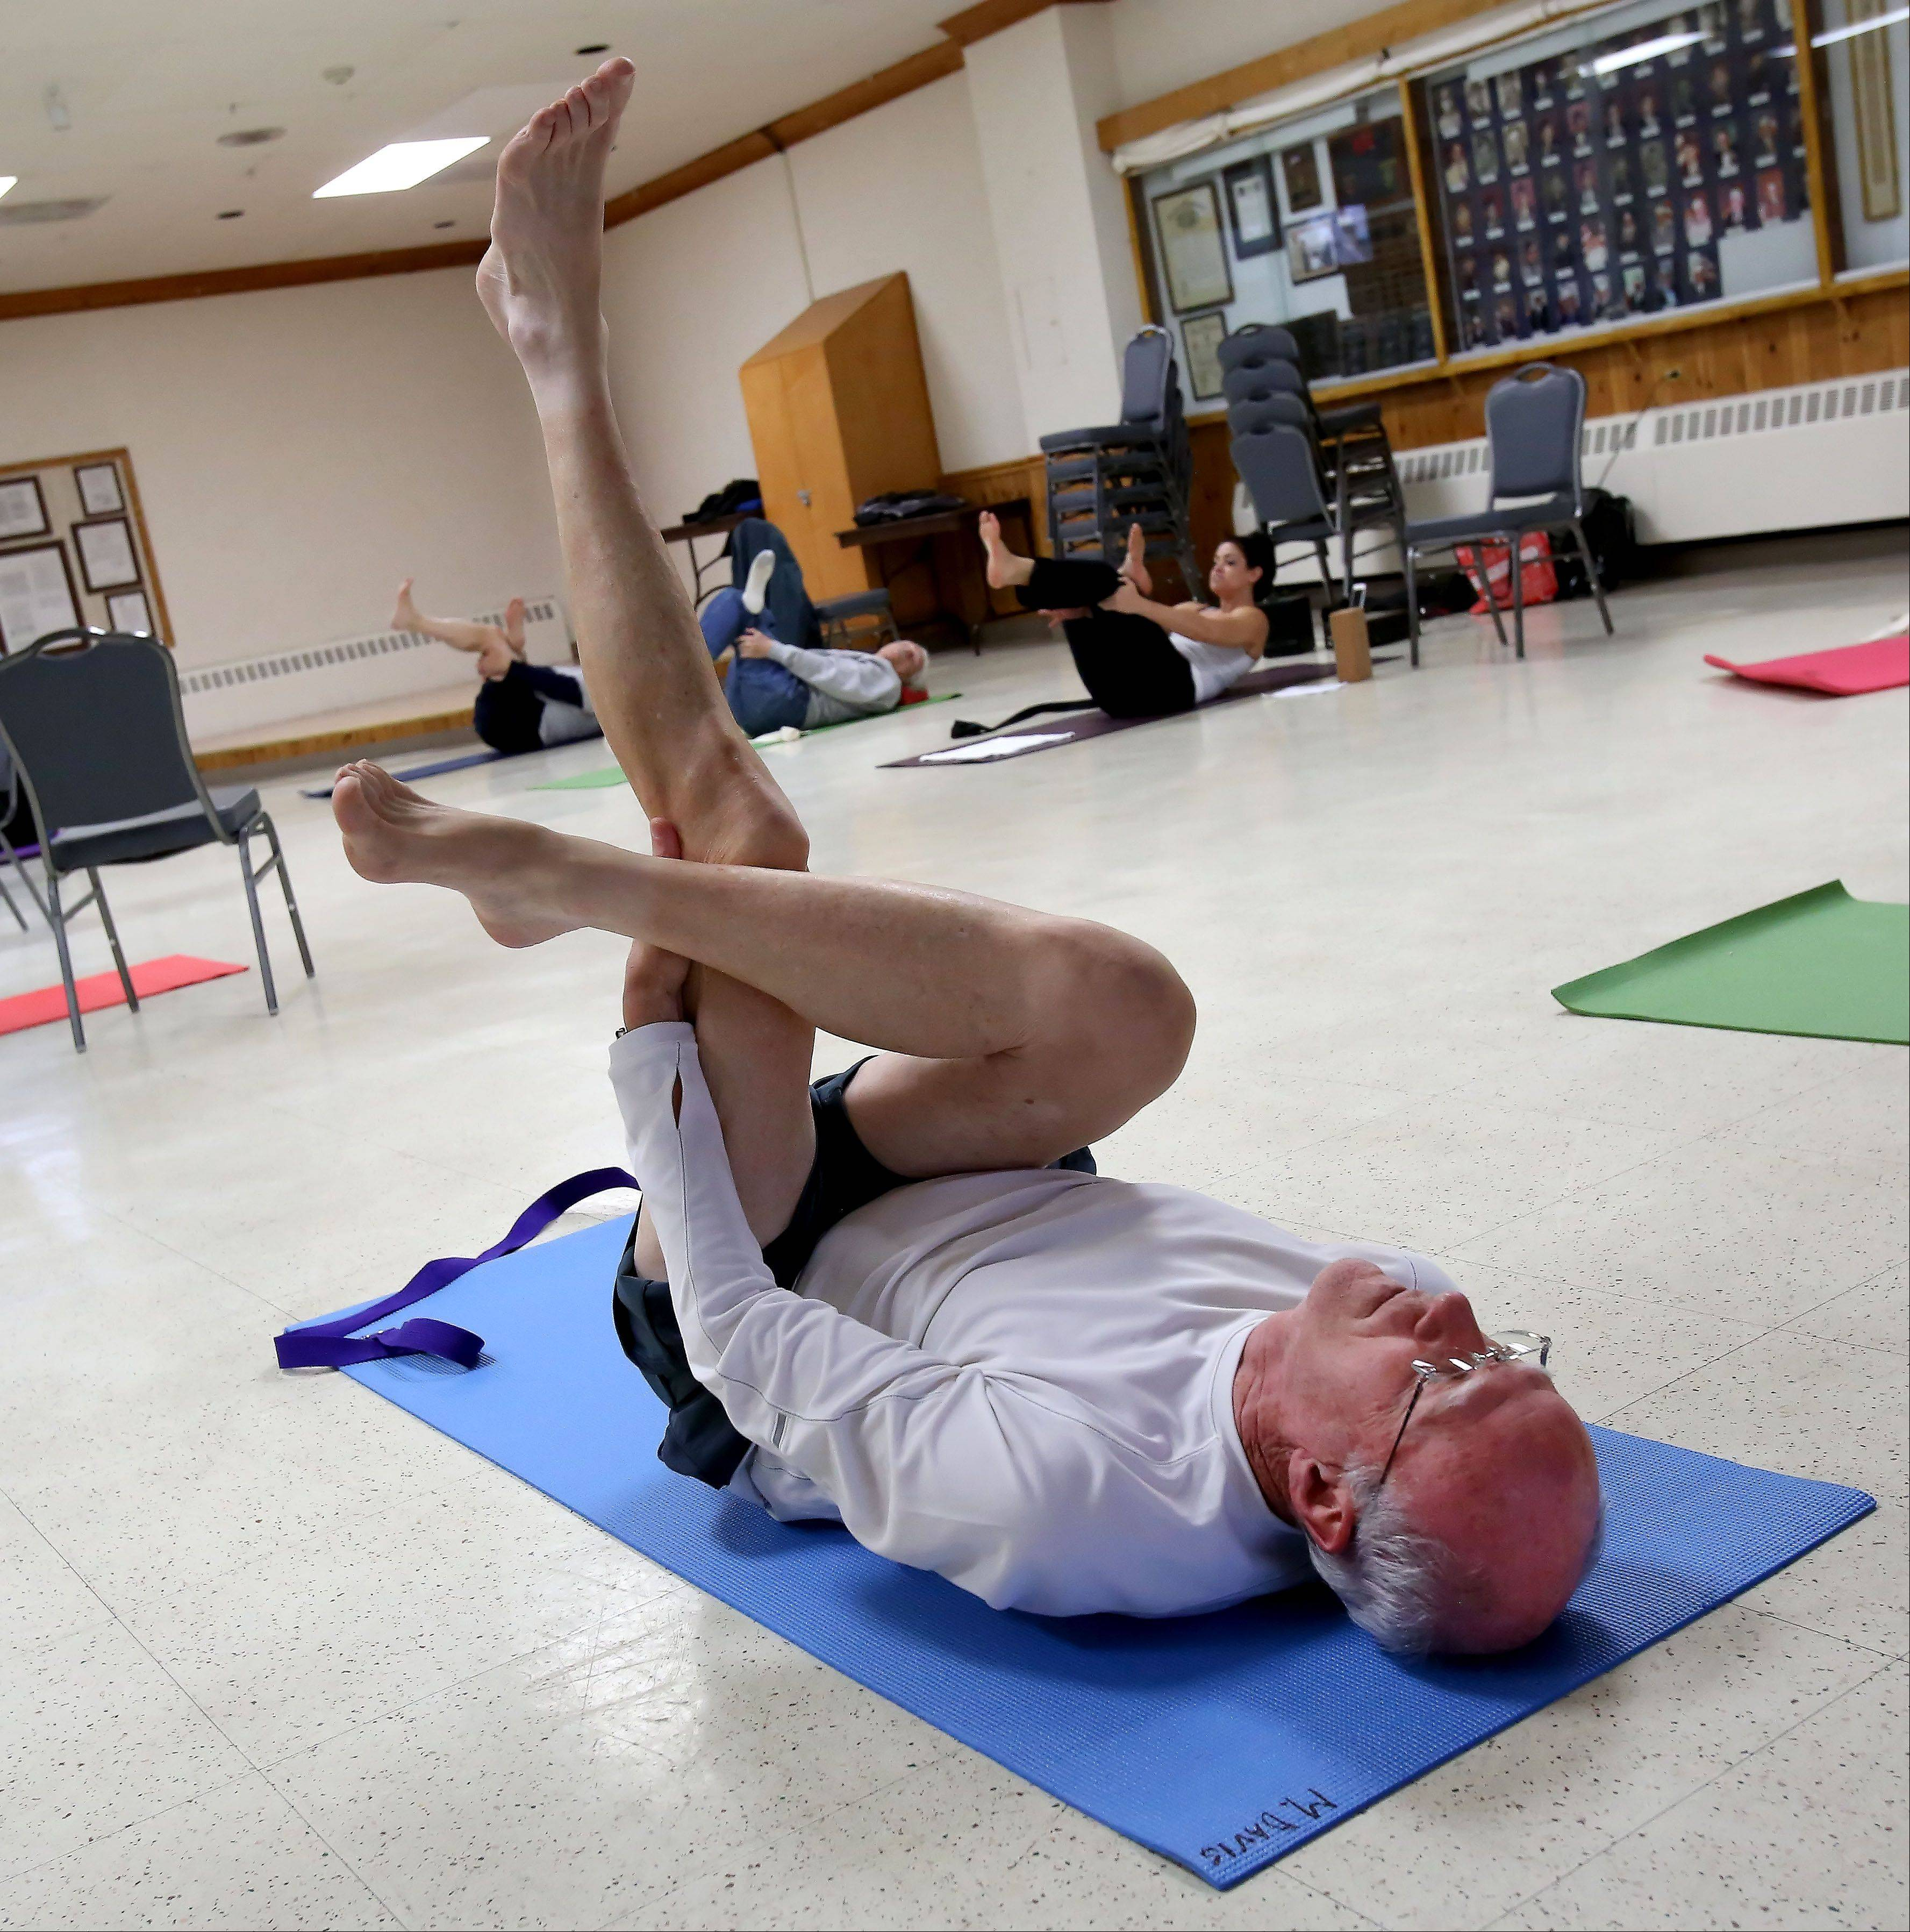 Mike Davis of Aurora holds a pose during a yoga class for veterans at Judd Kendall VFW Post 3873 in Naperville. About 20 veterans have participated in each free class, offered twice weekly since late October.